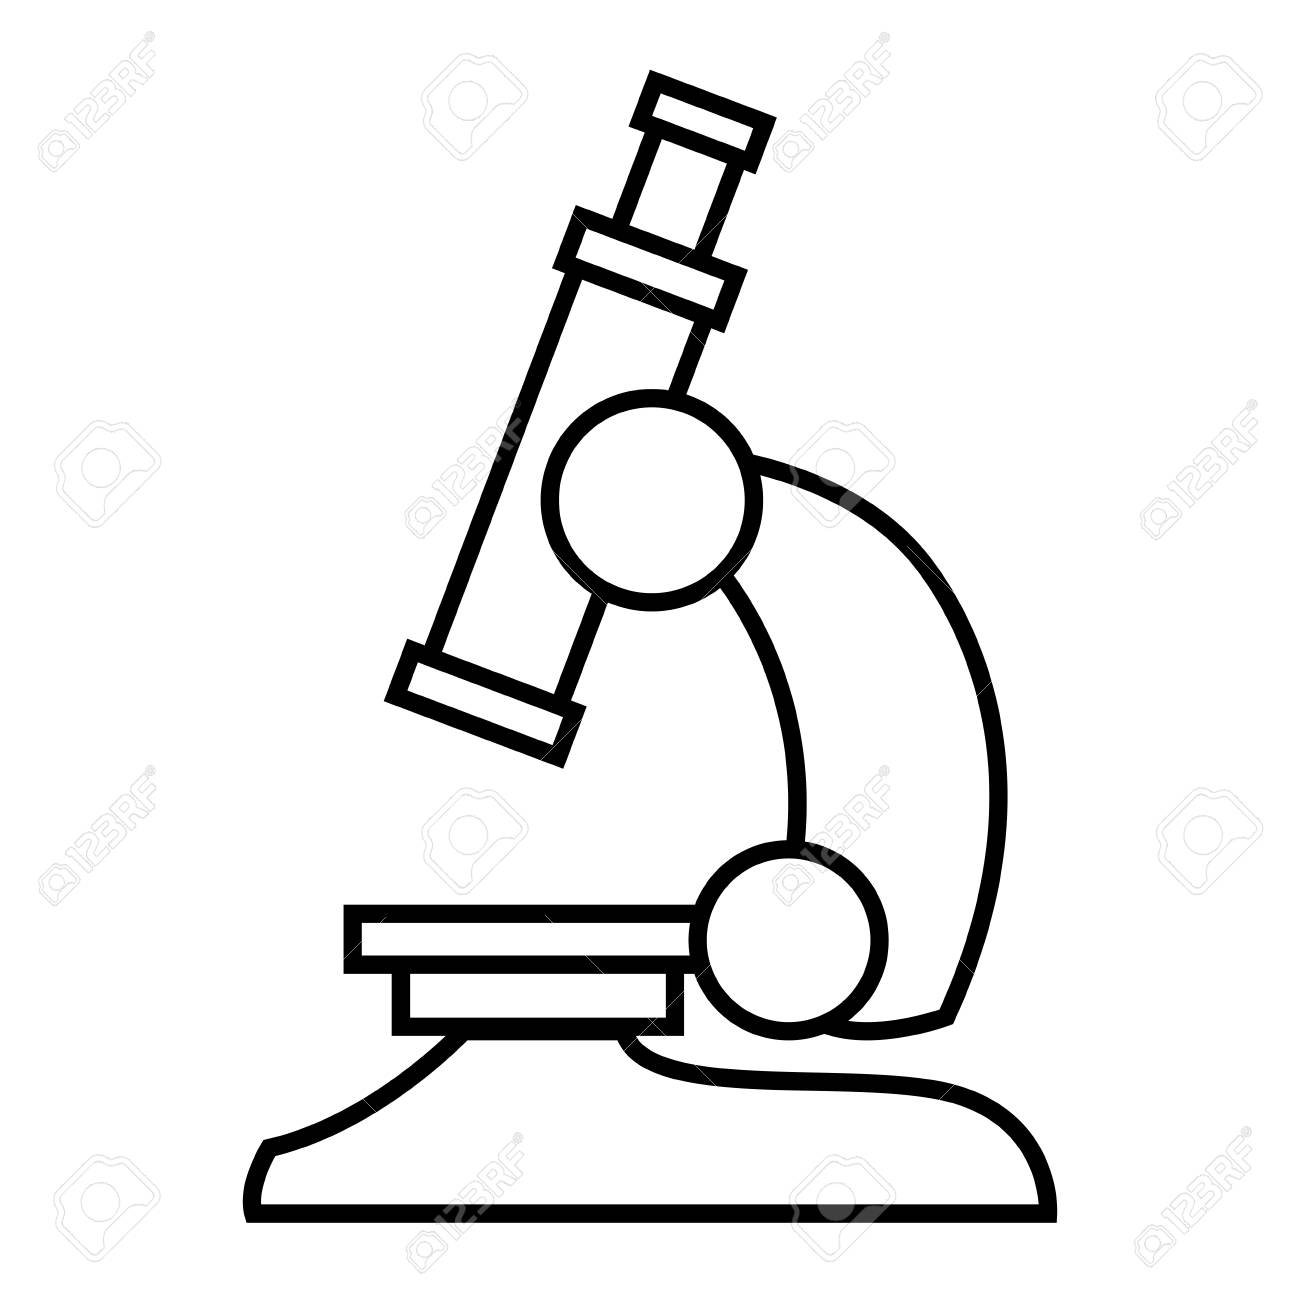 hight resolution of microscope scientific tool icon vector illustration graphic design stock vector 90307814